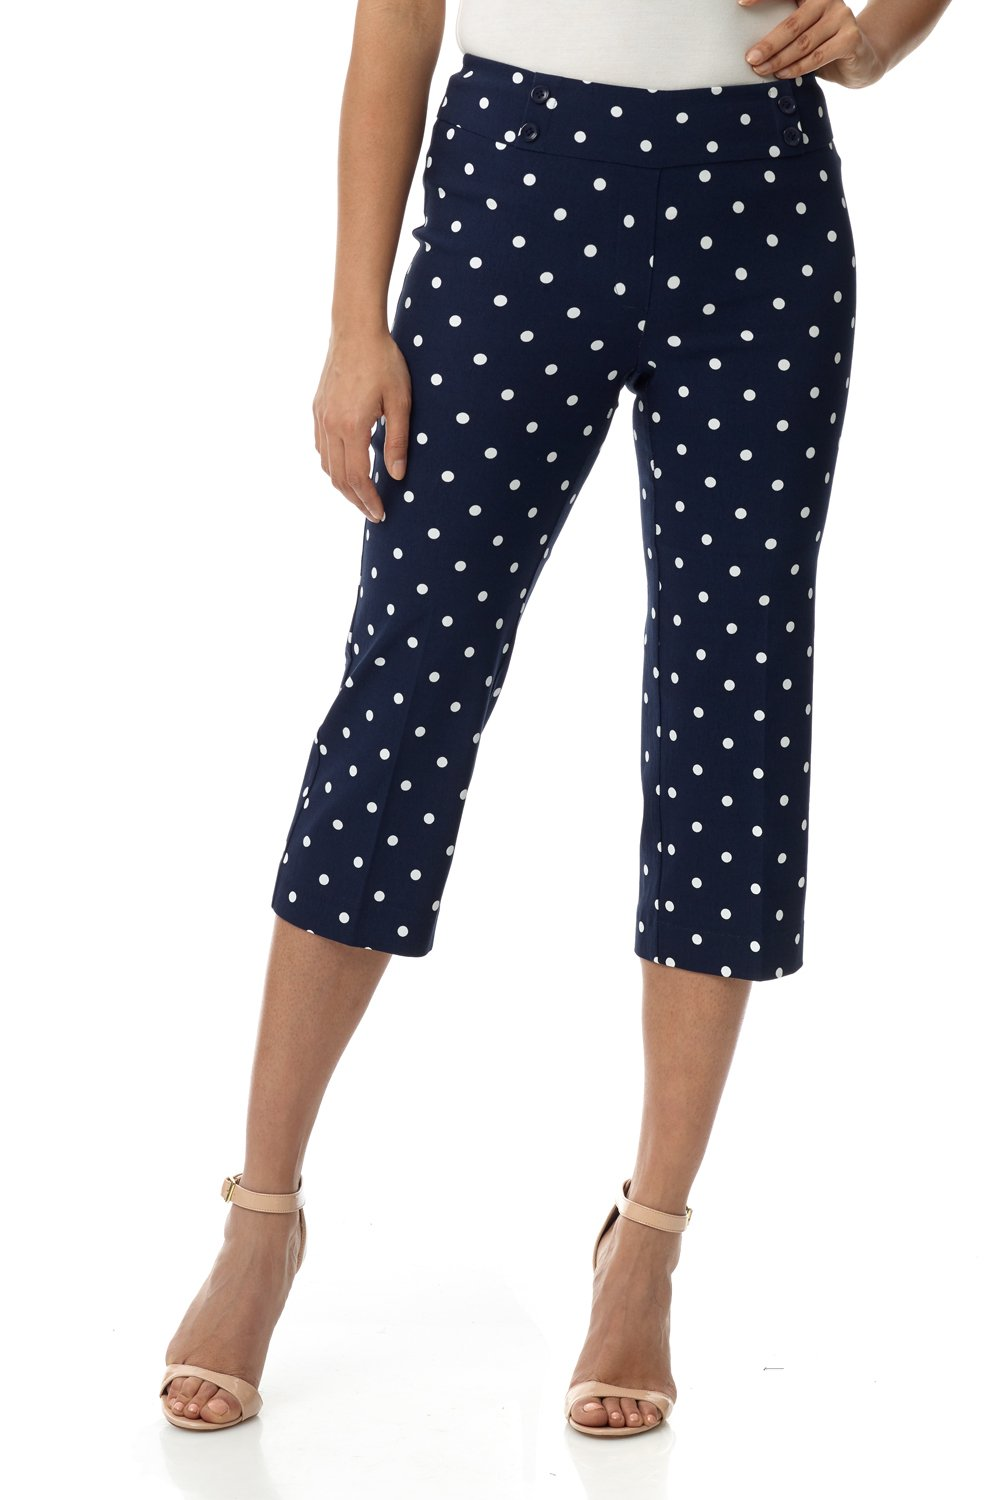 Rekucci Women's Ease in to Comfort Fit Capri with Button Detail (6,Navy/Ivory Dot)